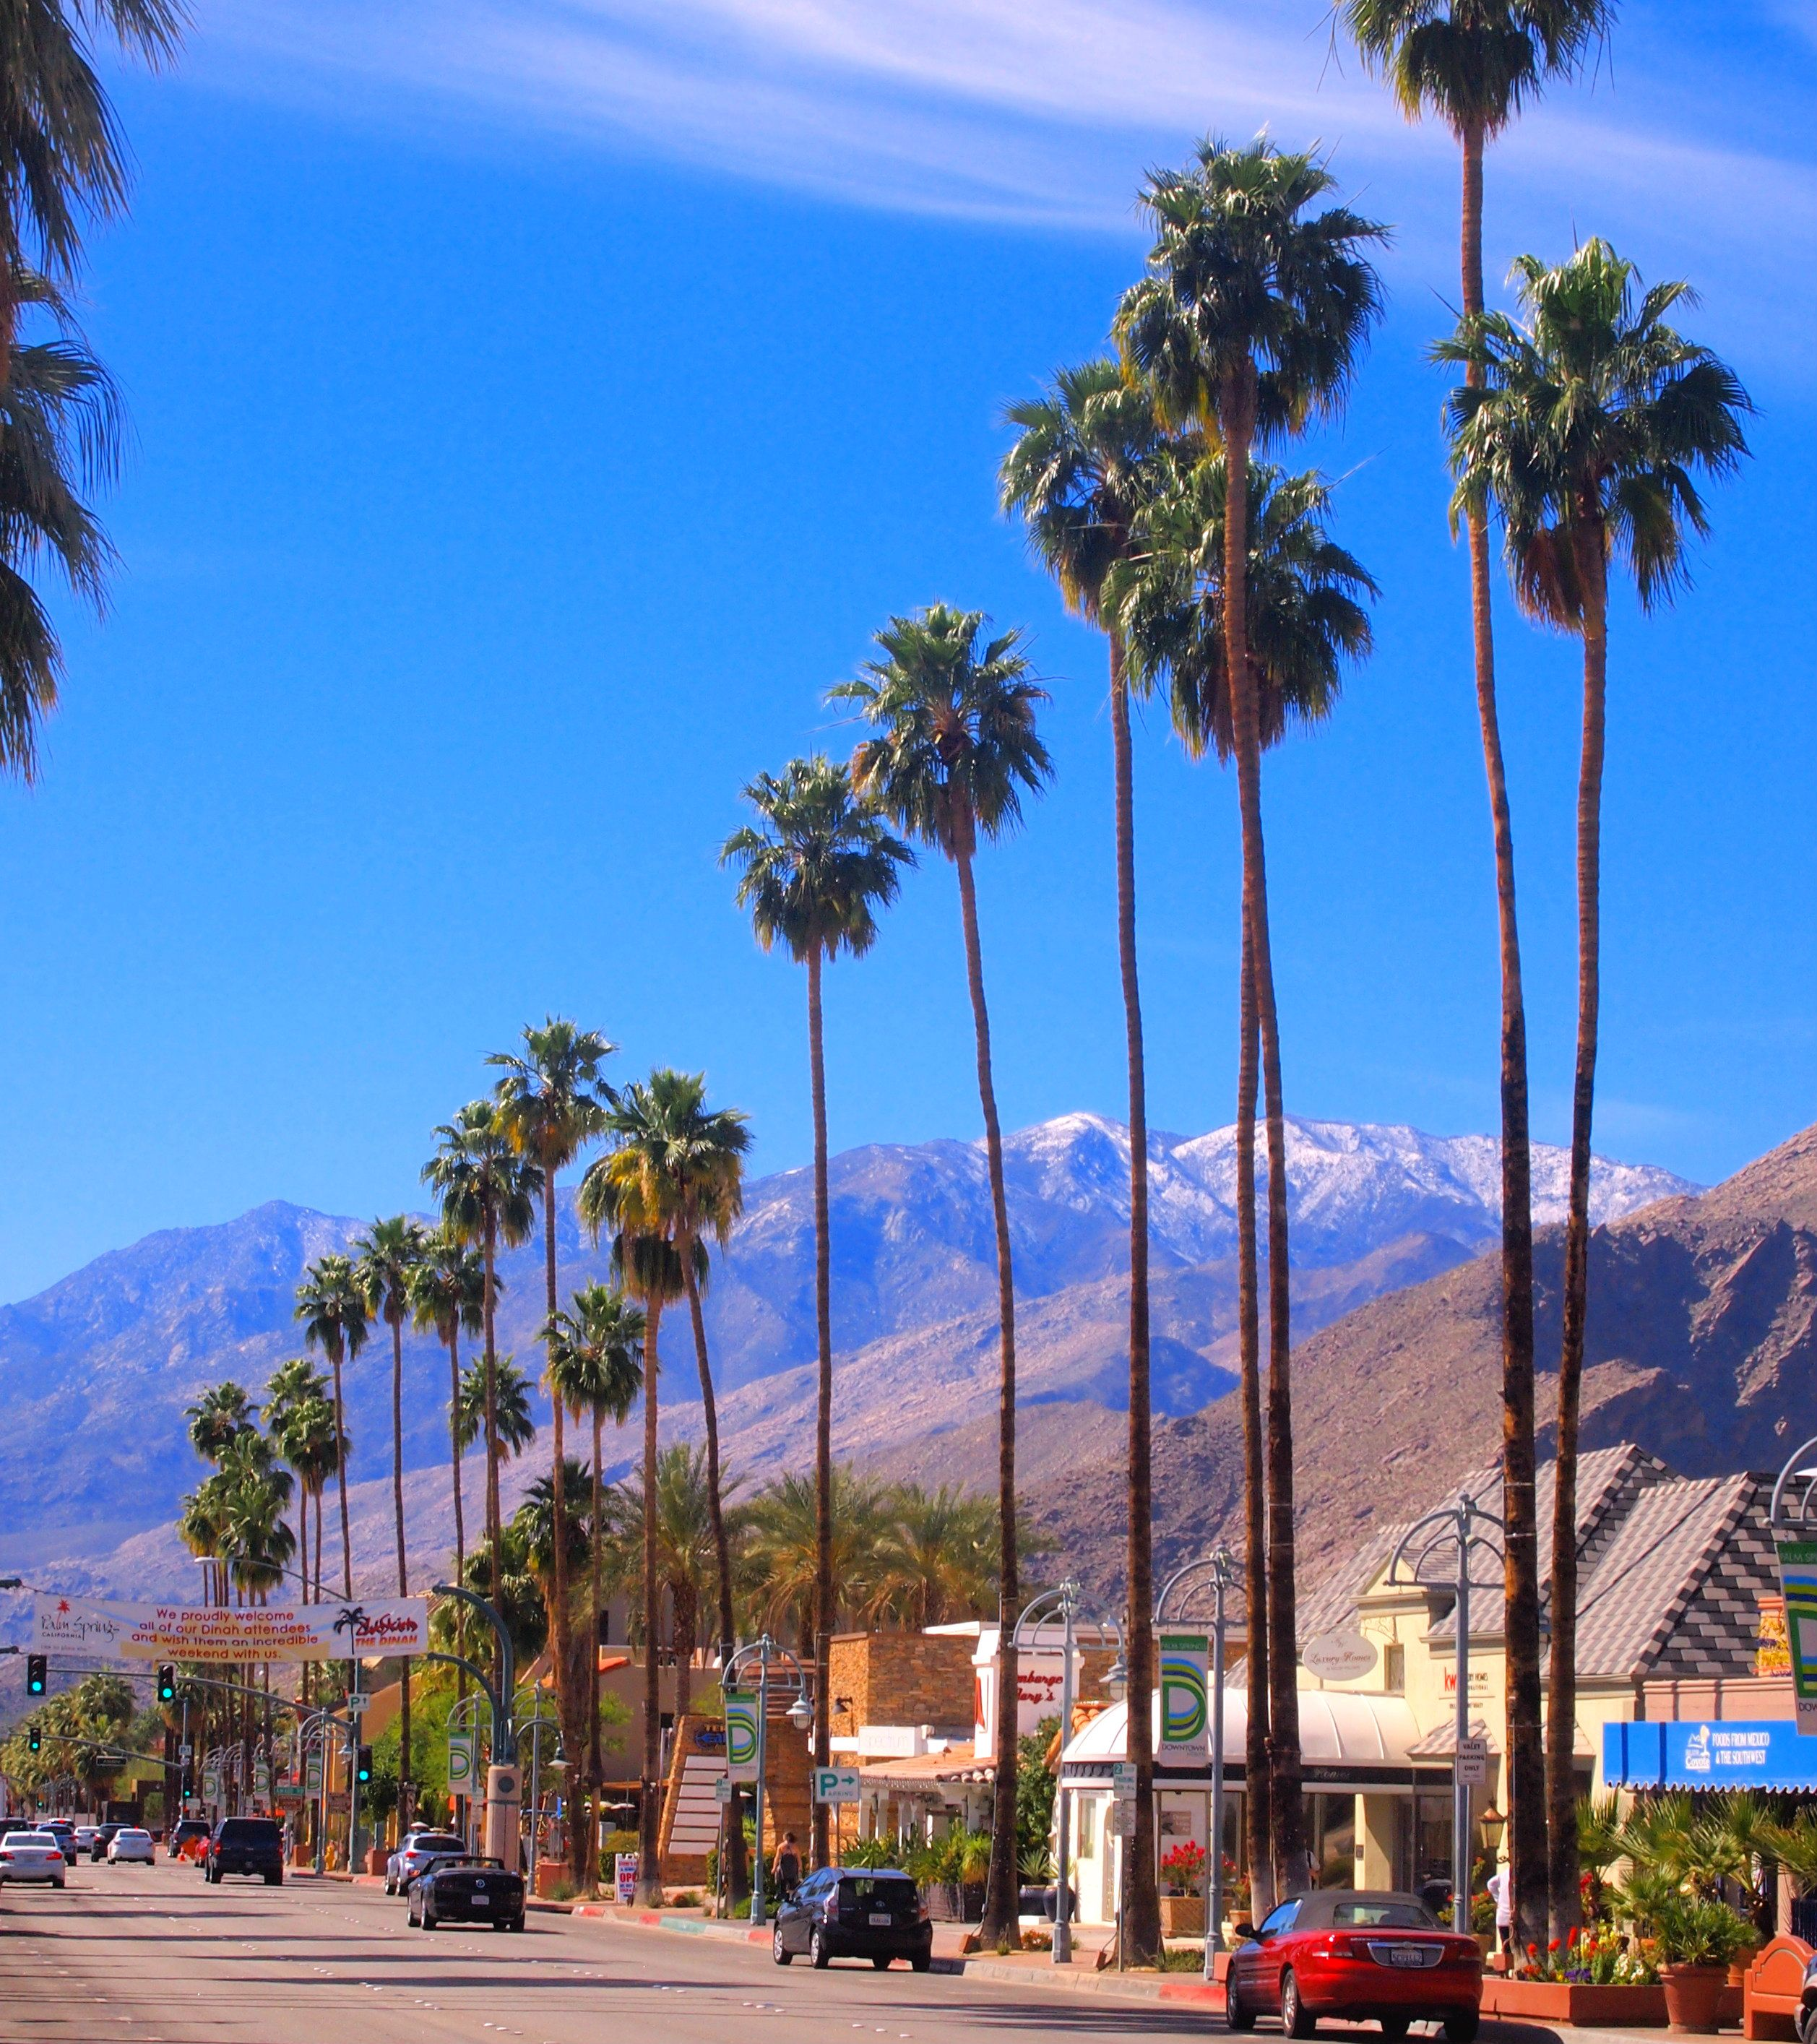 Palm Springs Tourism And Holidays Best Of Palm Springs: Shop And Play In Sunny Downtown Palm Springs